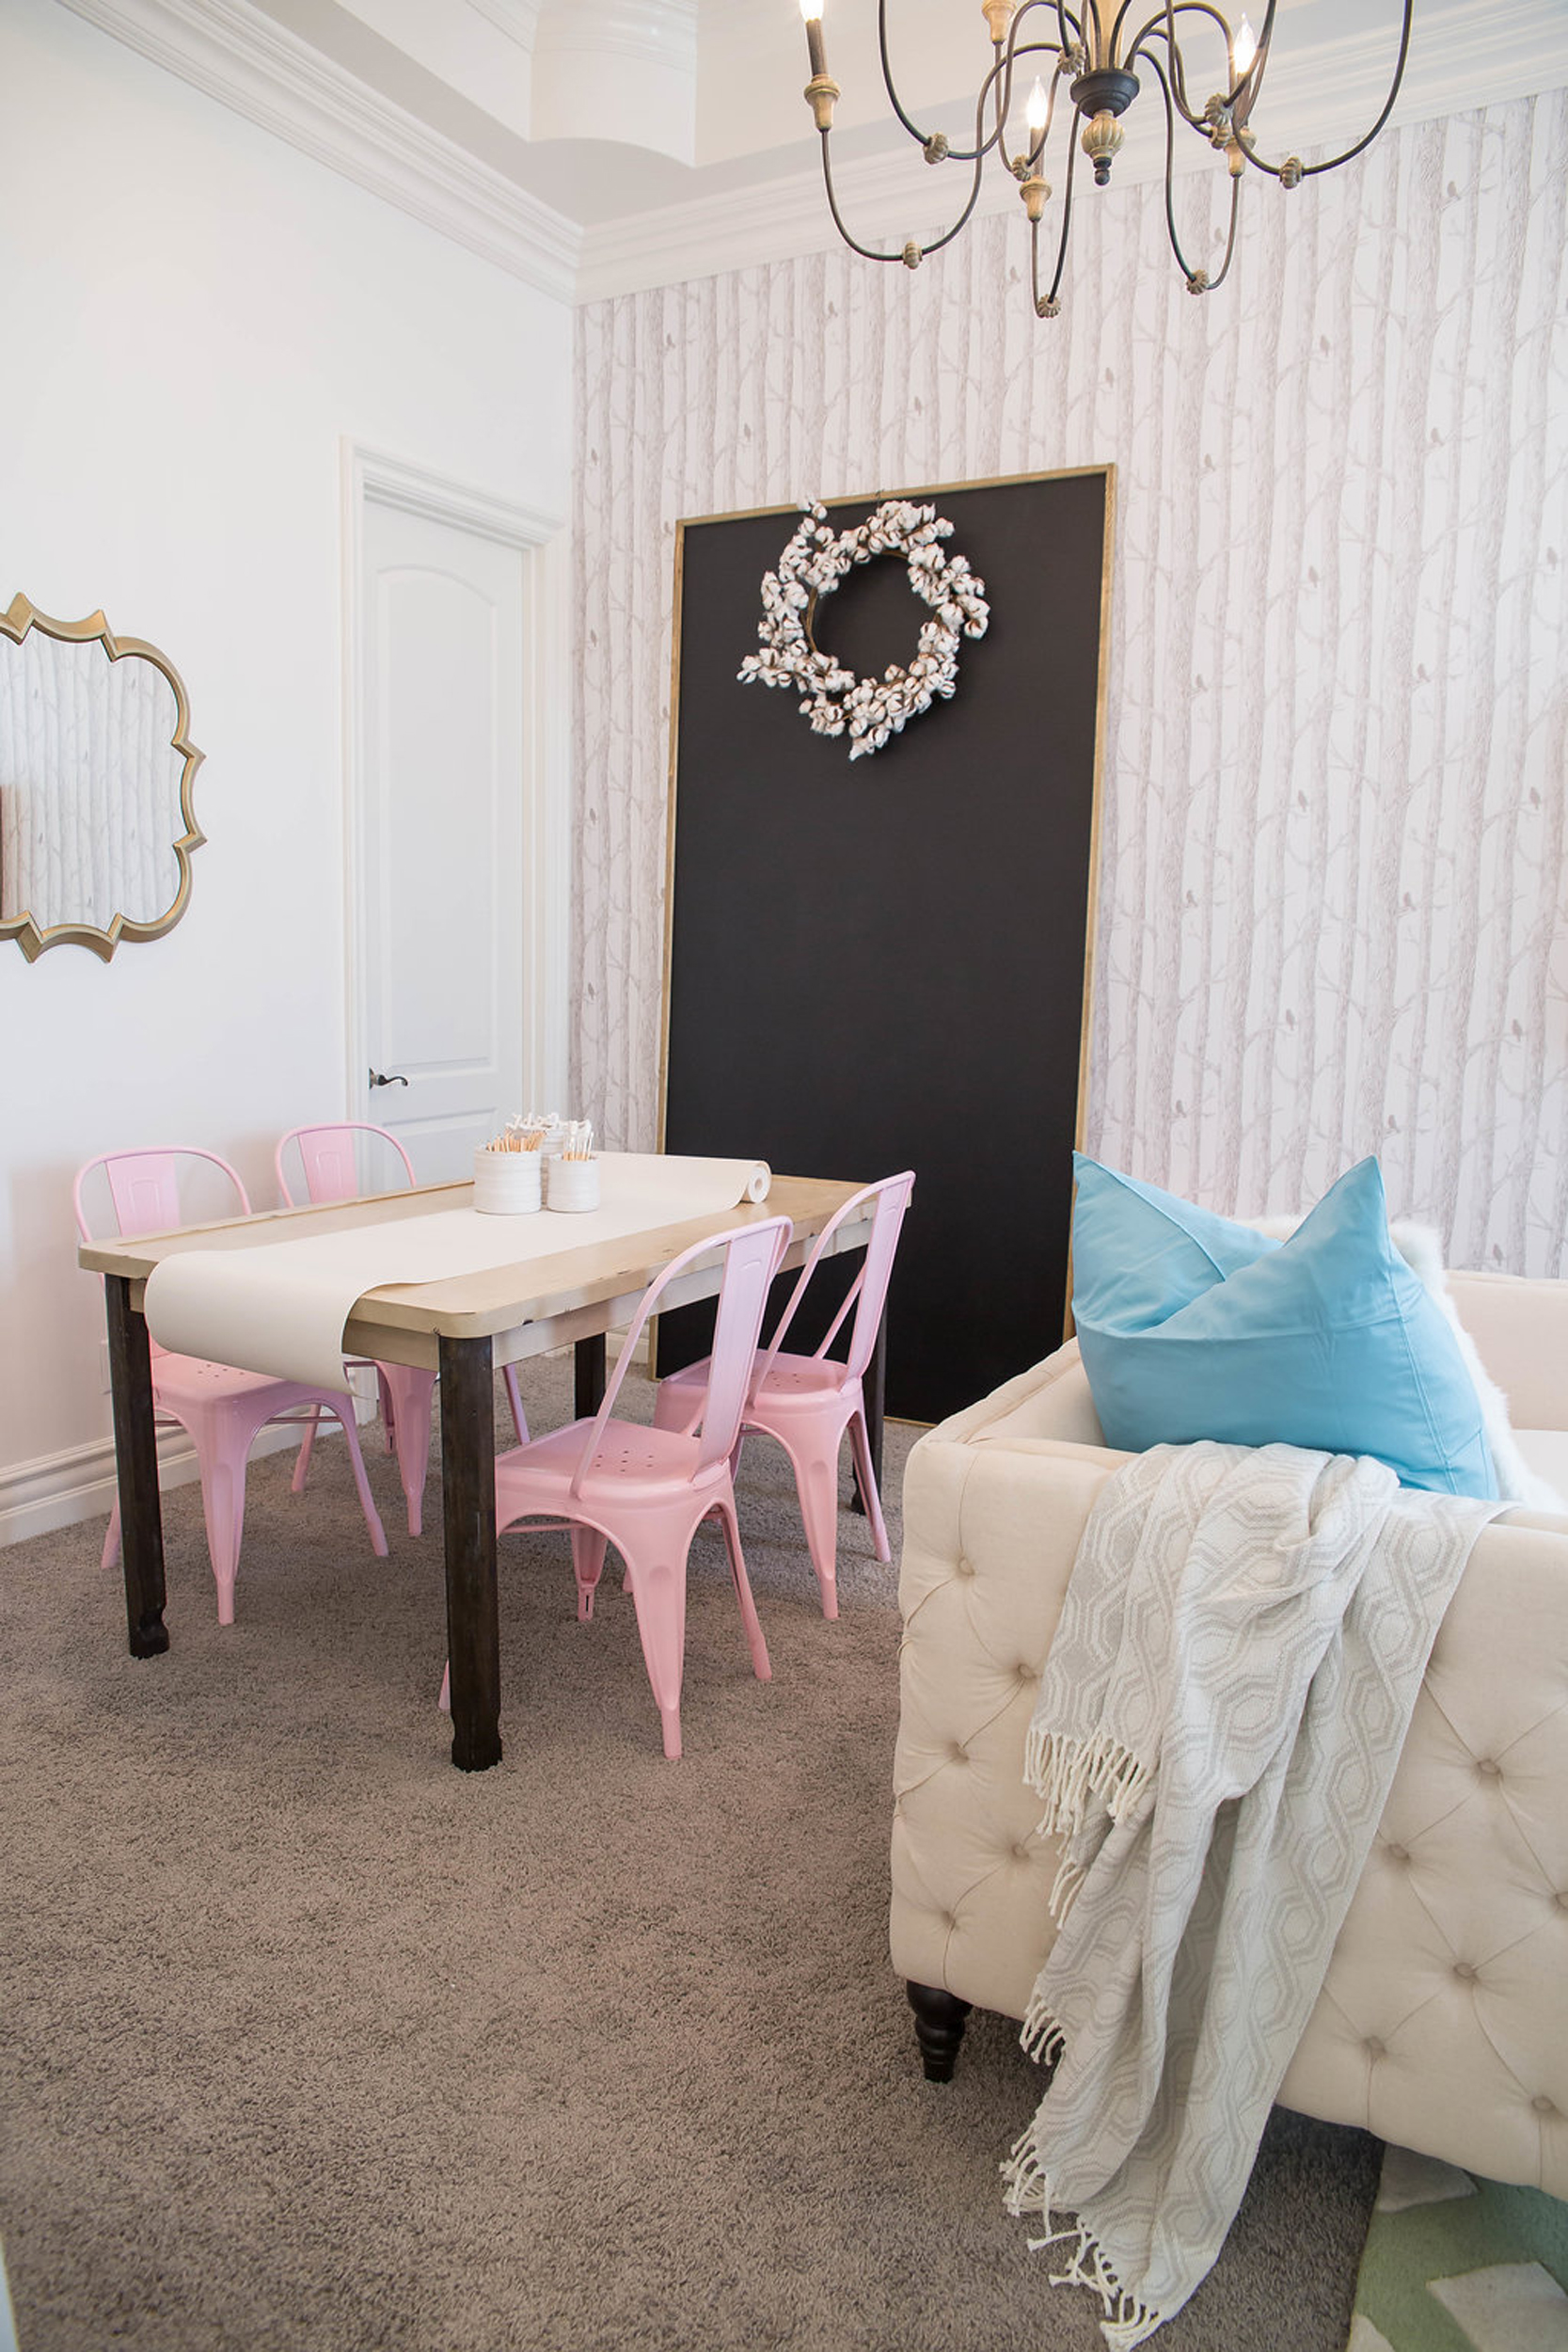 THE LifeStyled COMPANY - Sunset Court Project 4.jpg